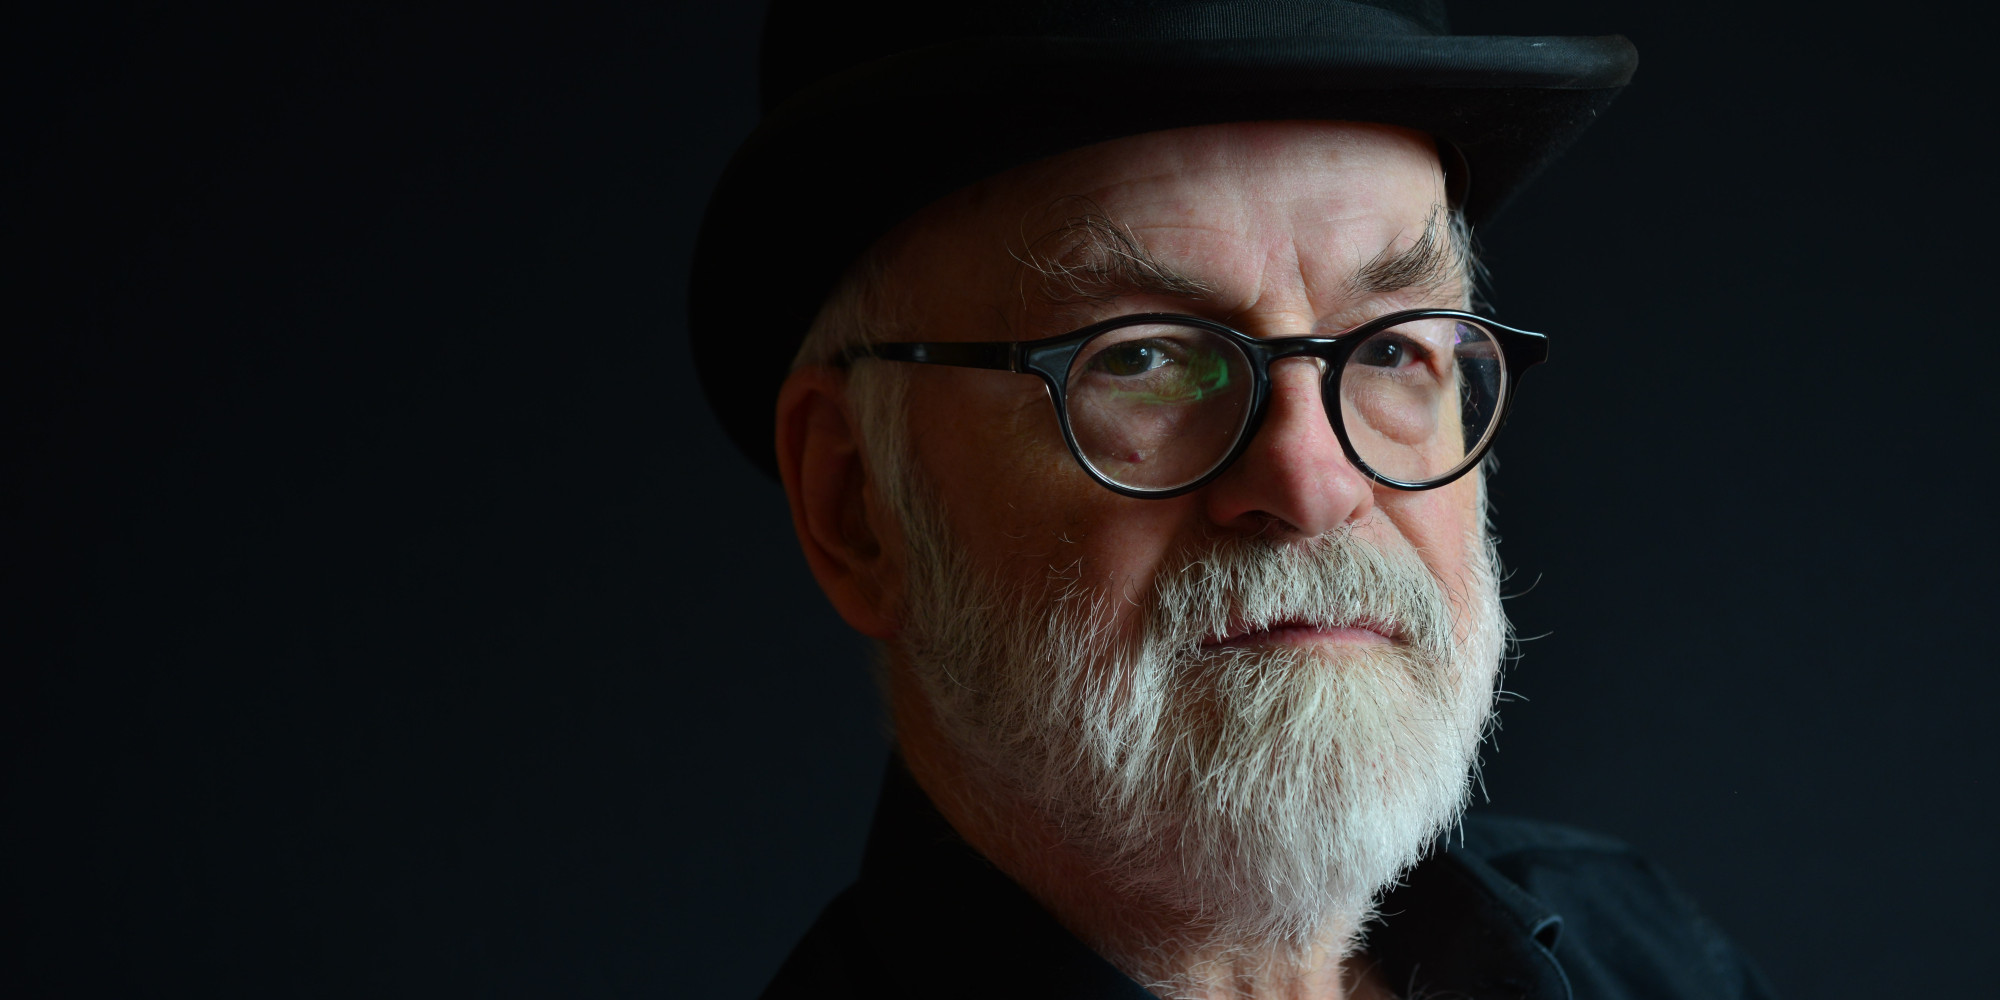 terry pratchett «back in black»